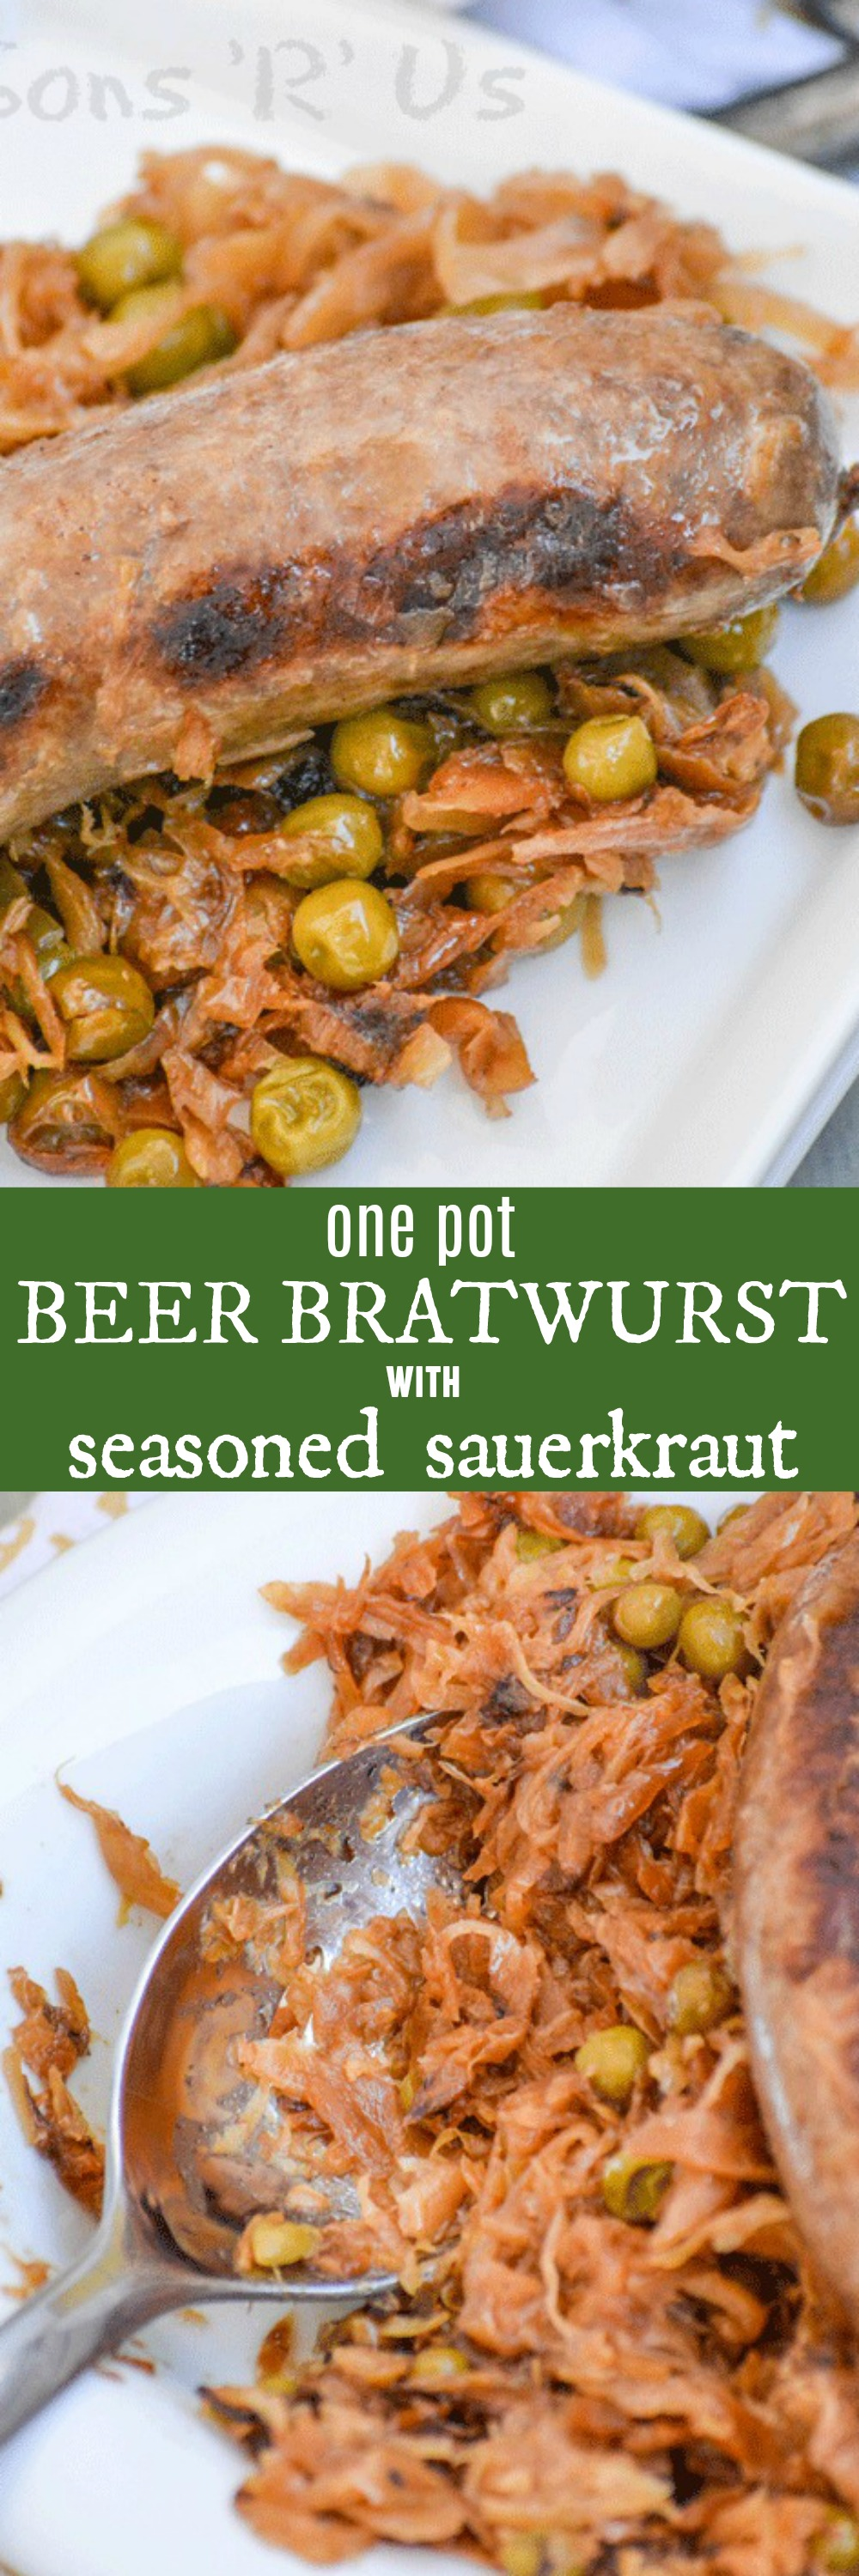 Beer Bratwurst with Caramelized Sauerkraut is a quick and easy, one dish dinner that is pure comfort food for any occasion. Shared with friends, made as a quick family meal- however you choose to serve & enjoy it, you can't go wrong.